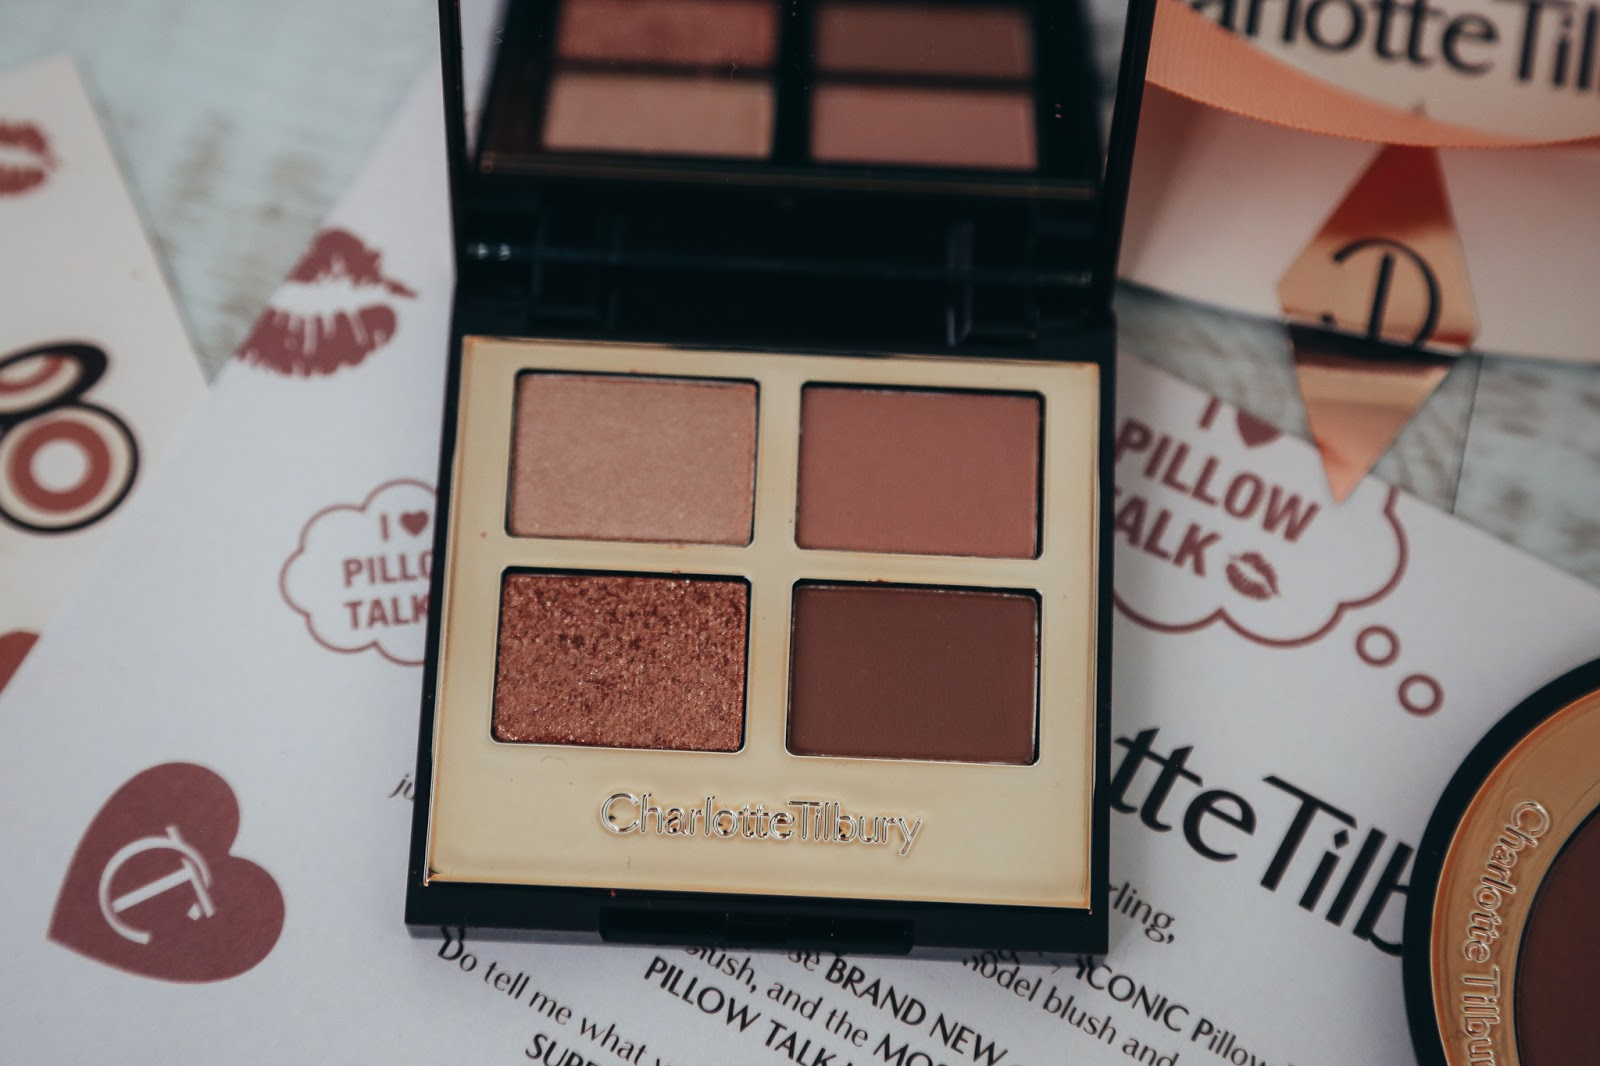 Charlotte Tilbury Pillow Talk Luxury Eye Palette Review